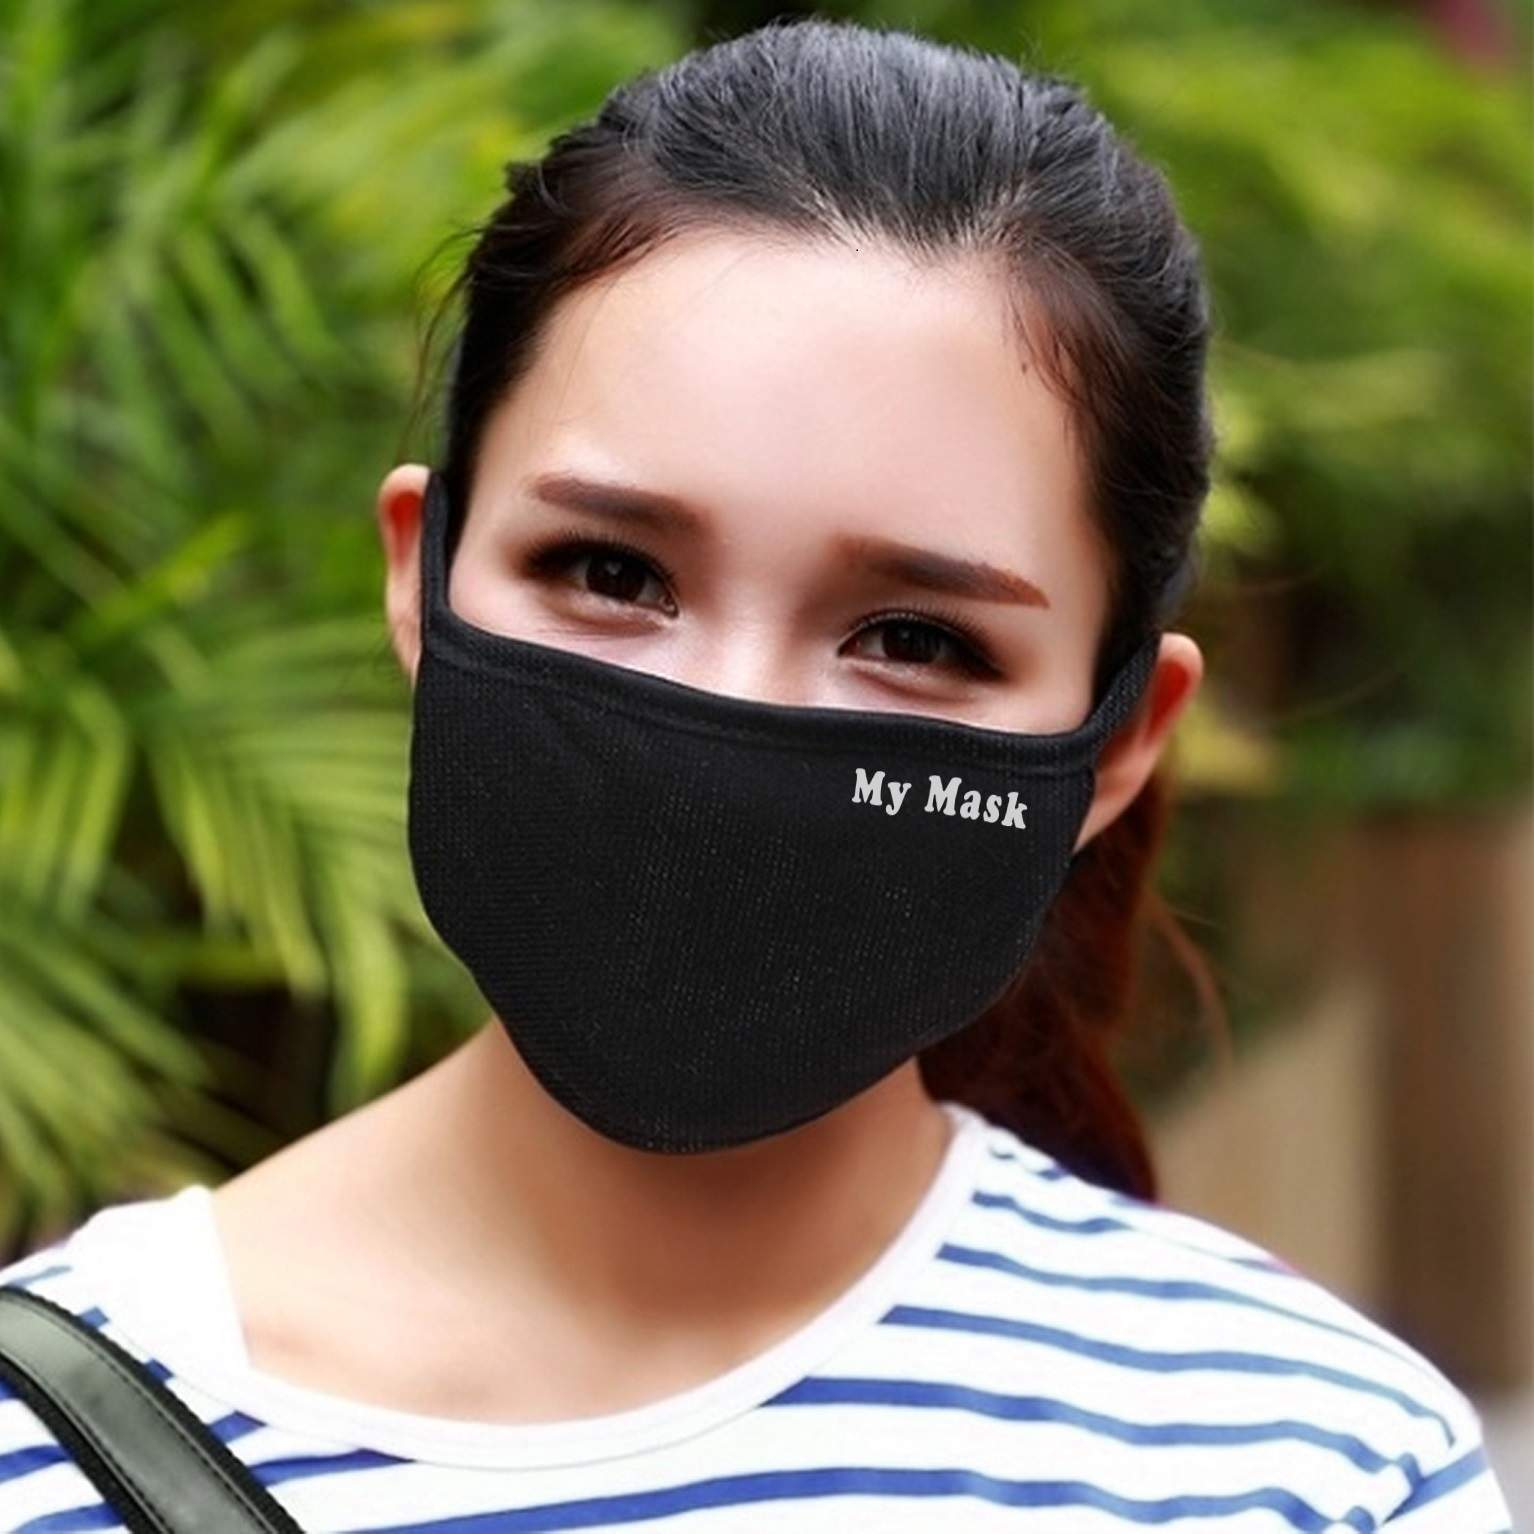 Vistaprint Unveils COVID 19 Face Masks On Its Website To